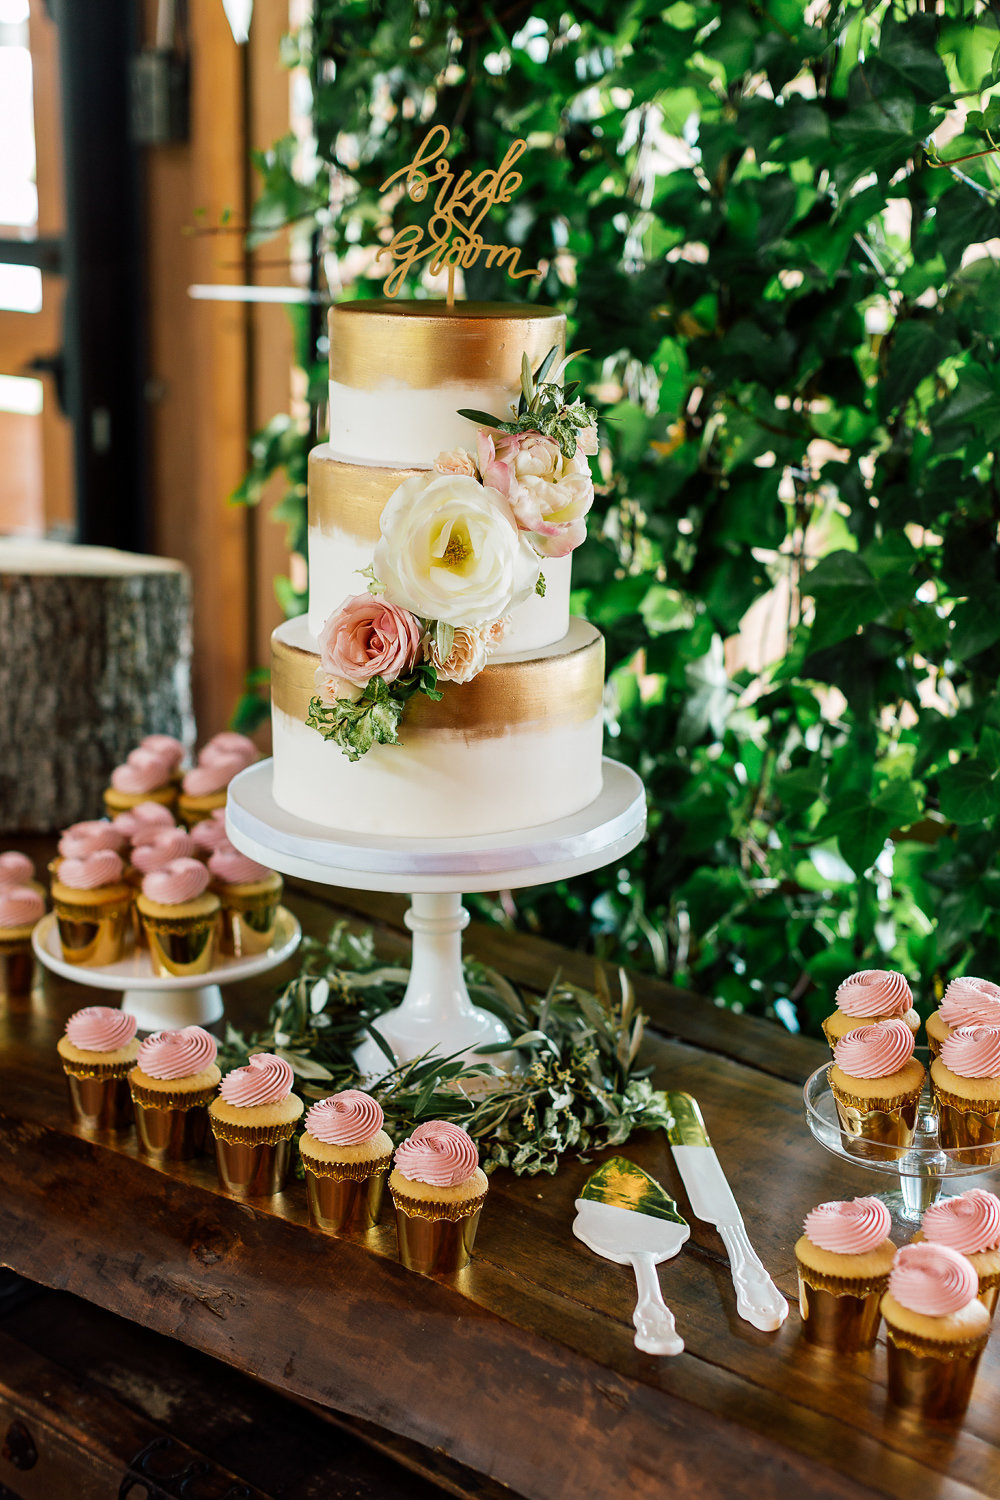 gold wedding cakes - photo by Purple Tree Photography http://ruffledblog.com/charming-wine-country-wedding-at-kurtz-orchard